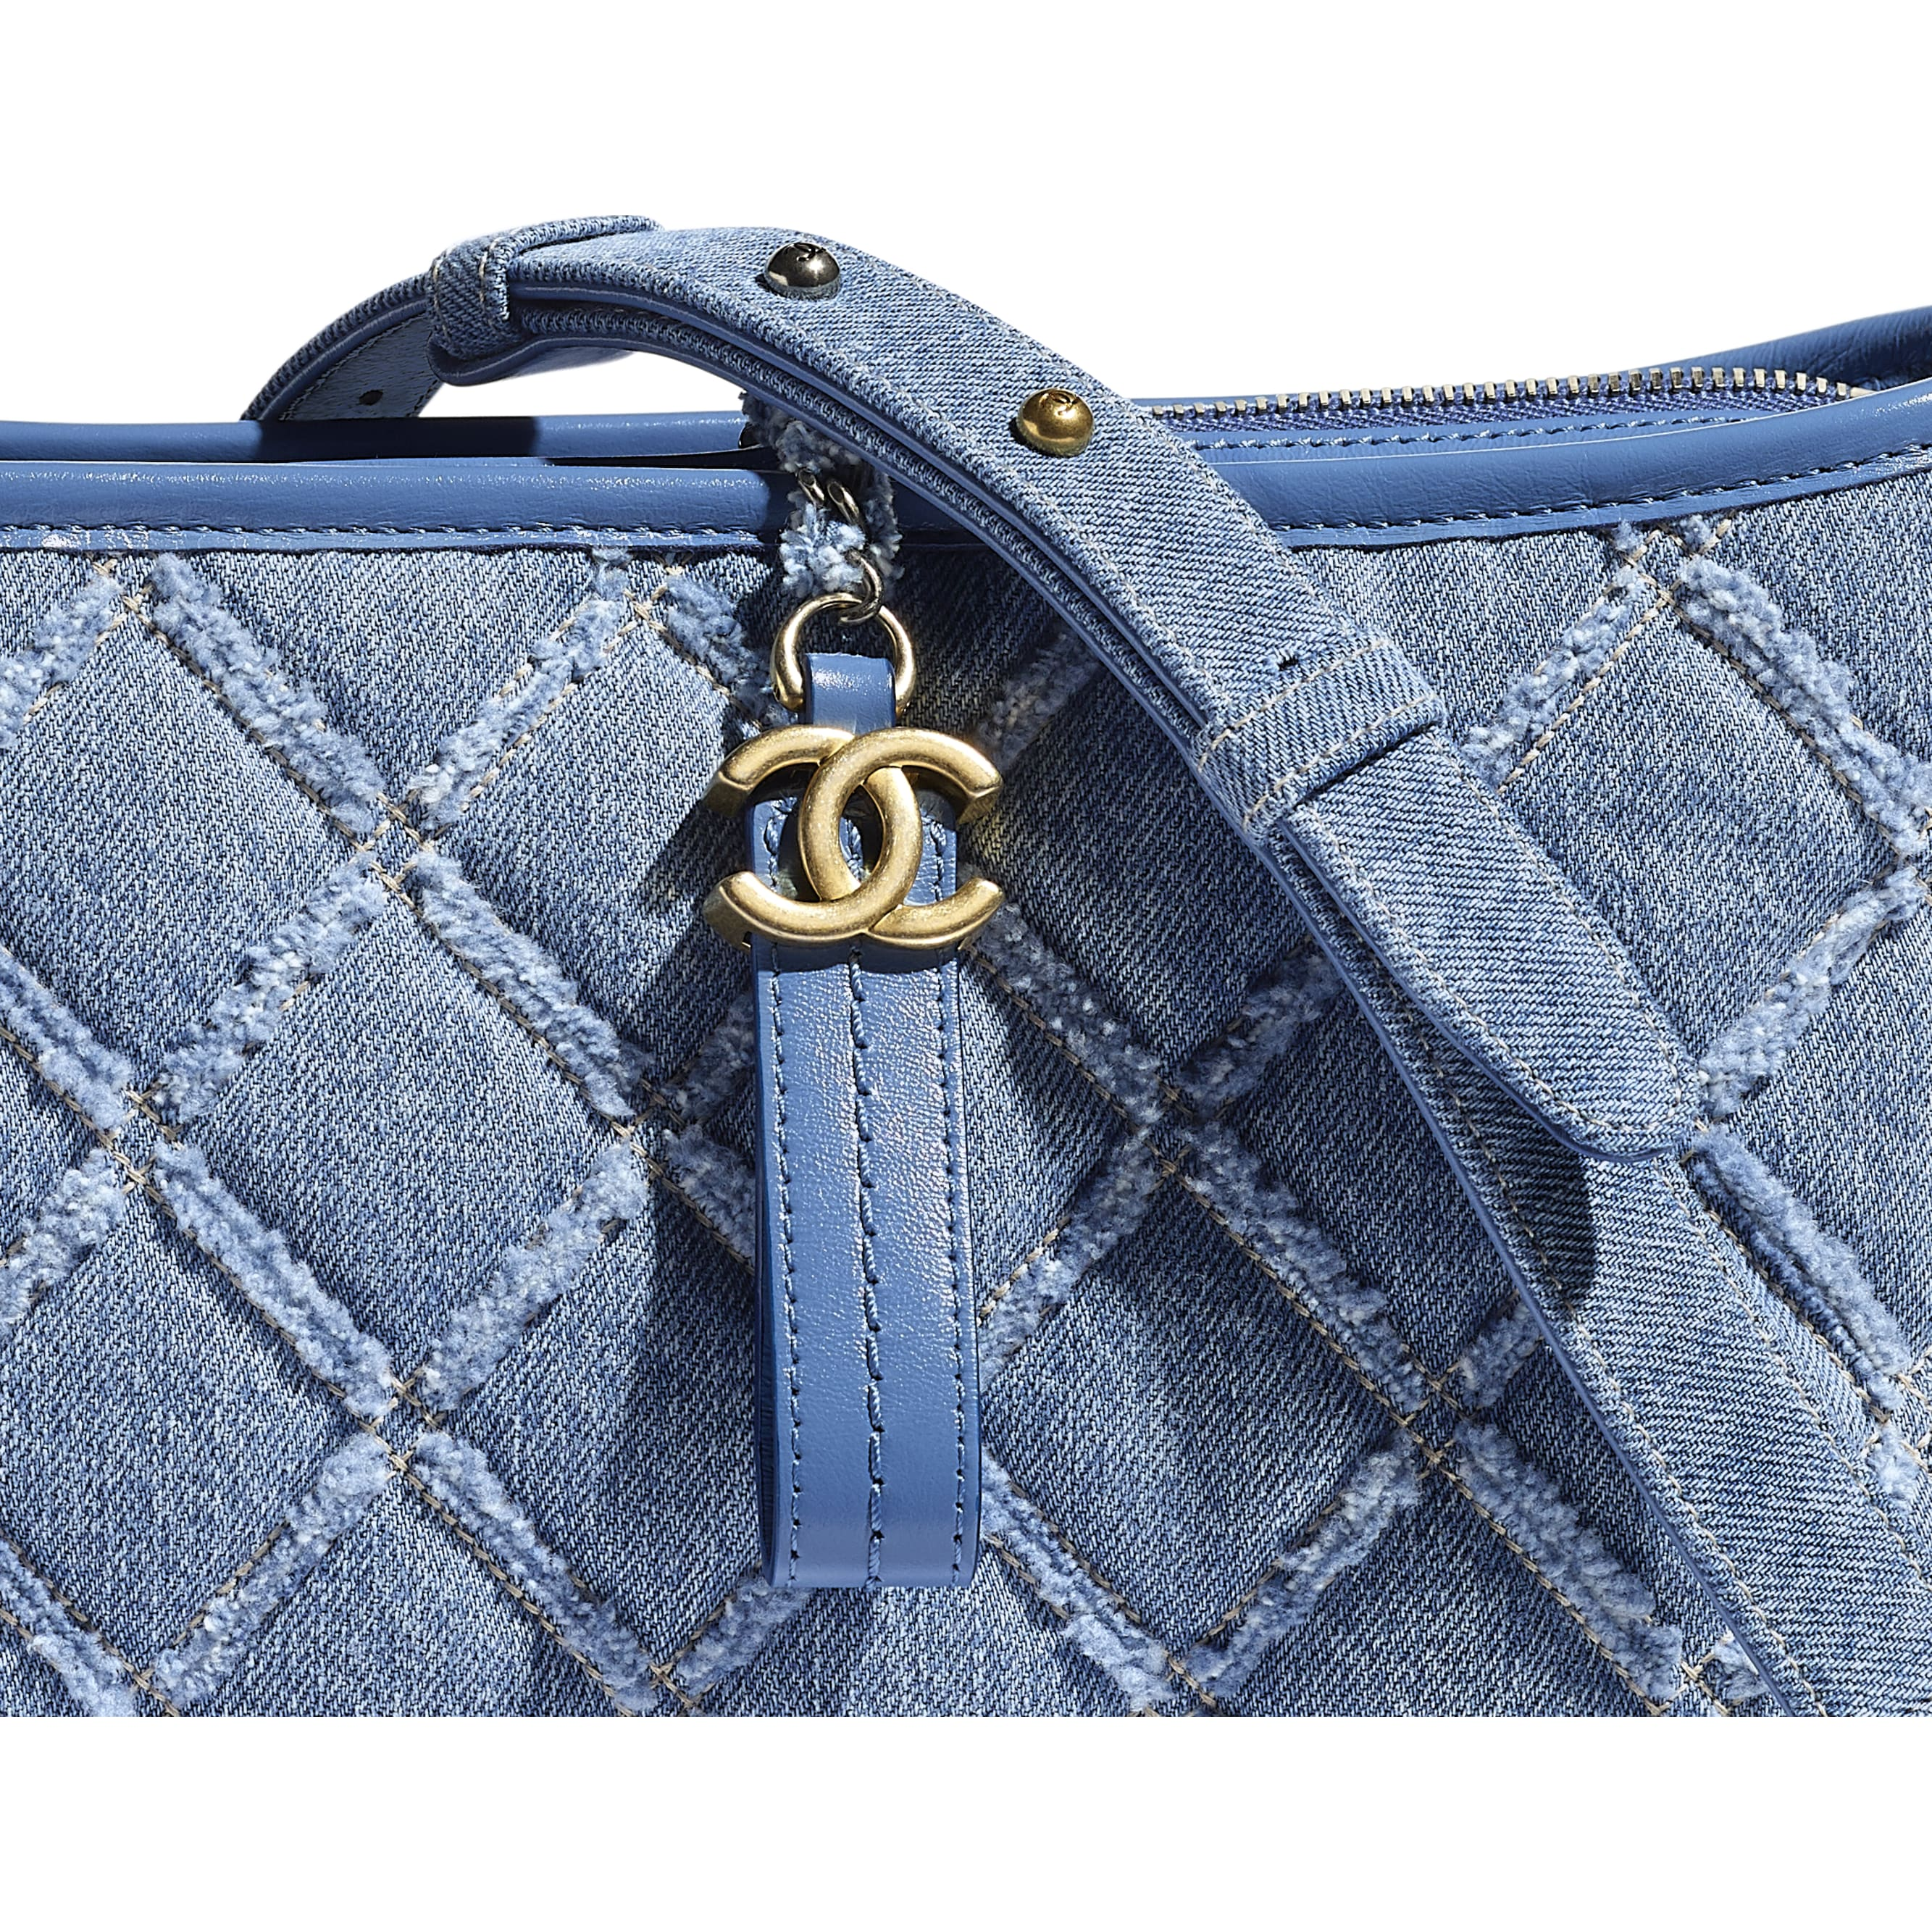 CHANEL'S GABRIELLE Large Hobo Bag - Blue - Denim, Calfskin, Gold-Tone, Silver-Tone & Ruthenium-Finish Metal - CHANEL - Extra view - see standard sized version